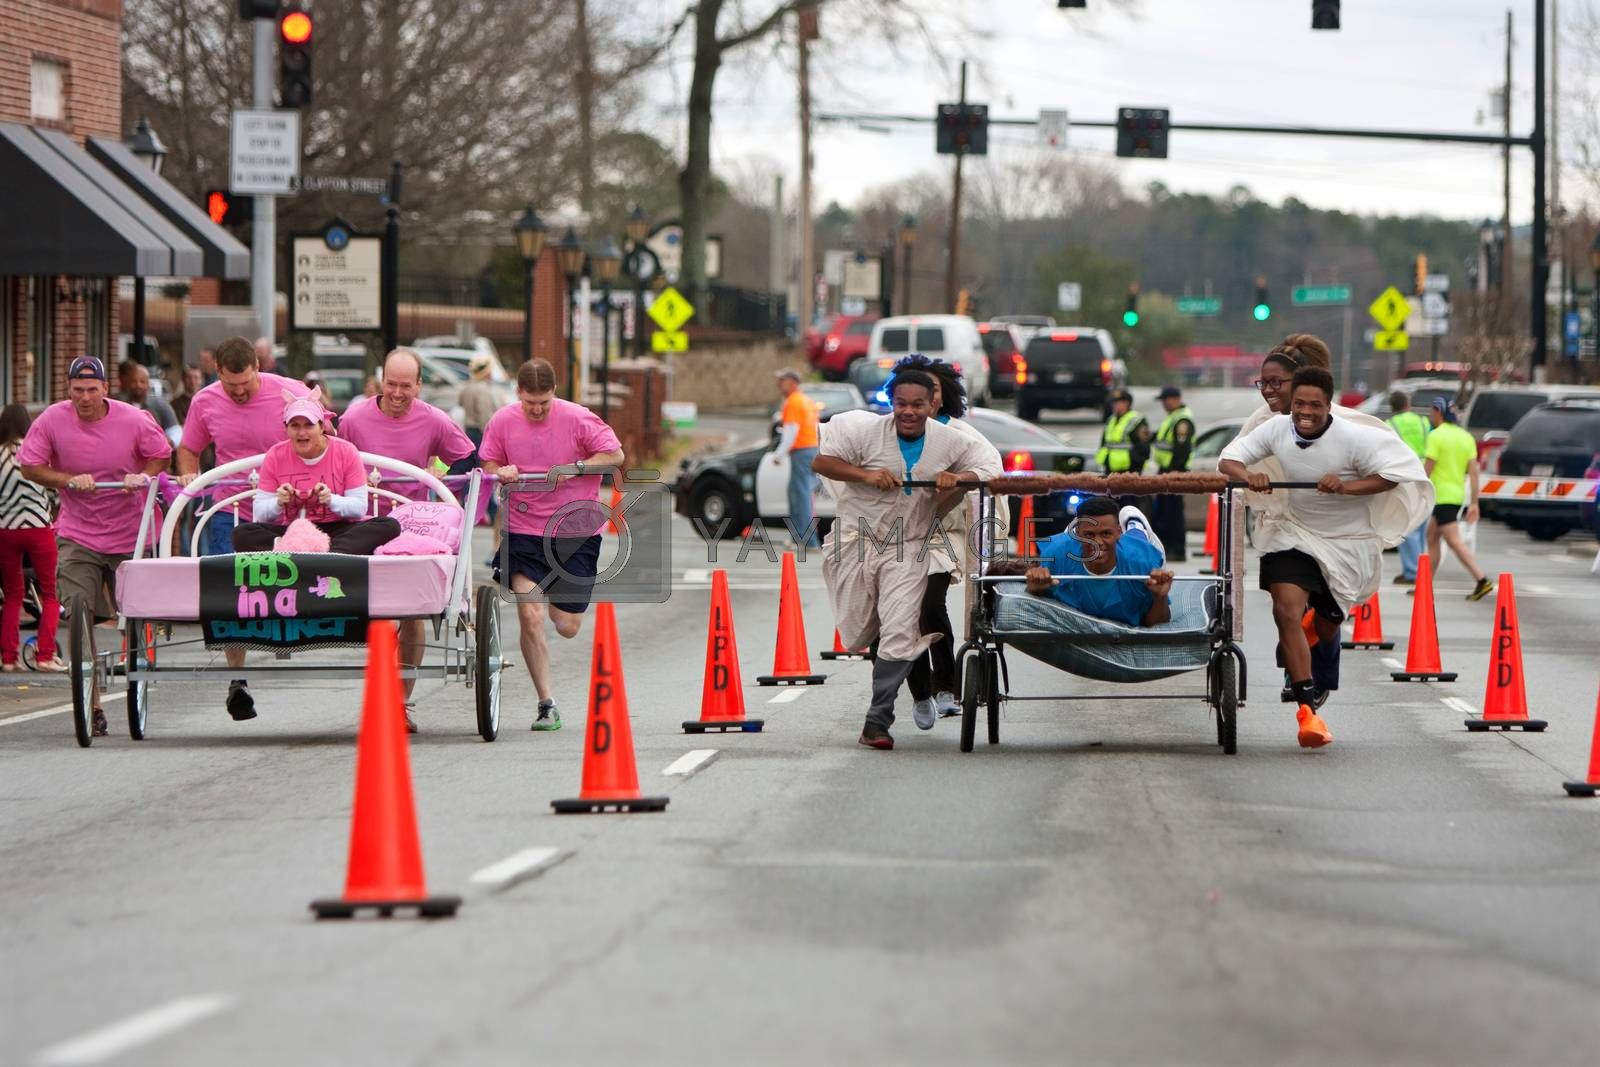 Royalty free image of Teams Push Silly Beds Down Street In Fundraiser Race by BluIz60